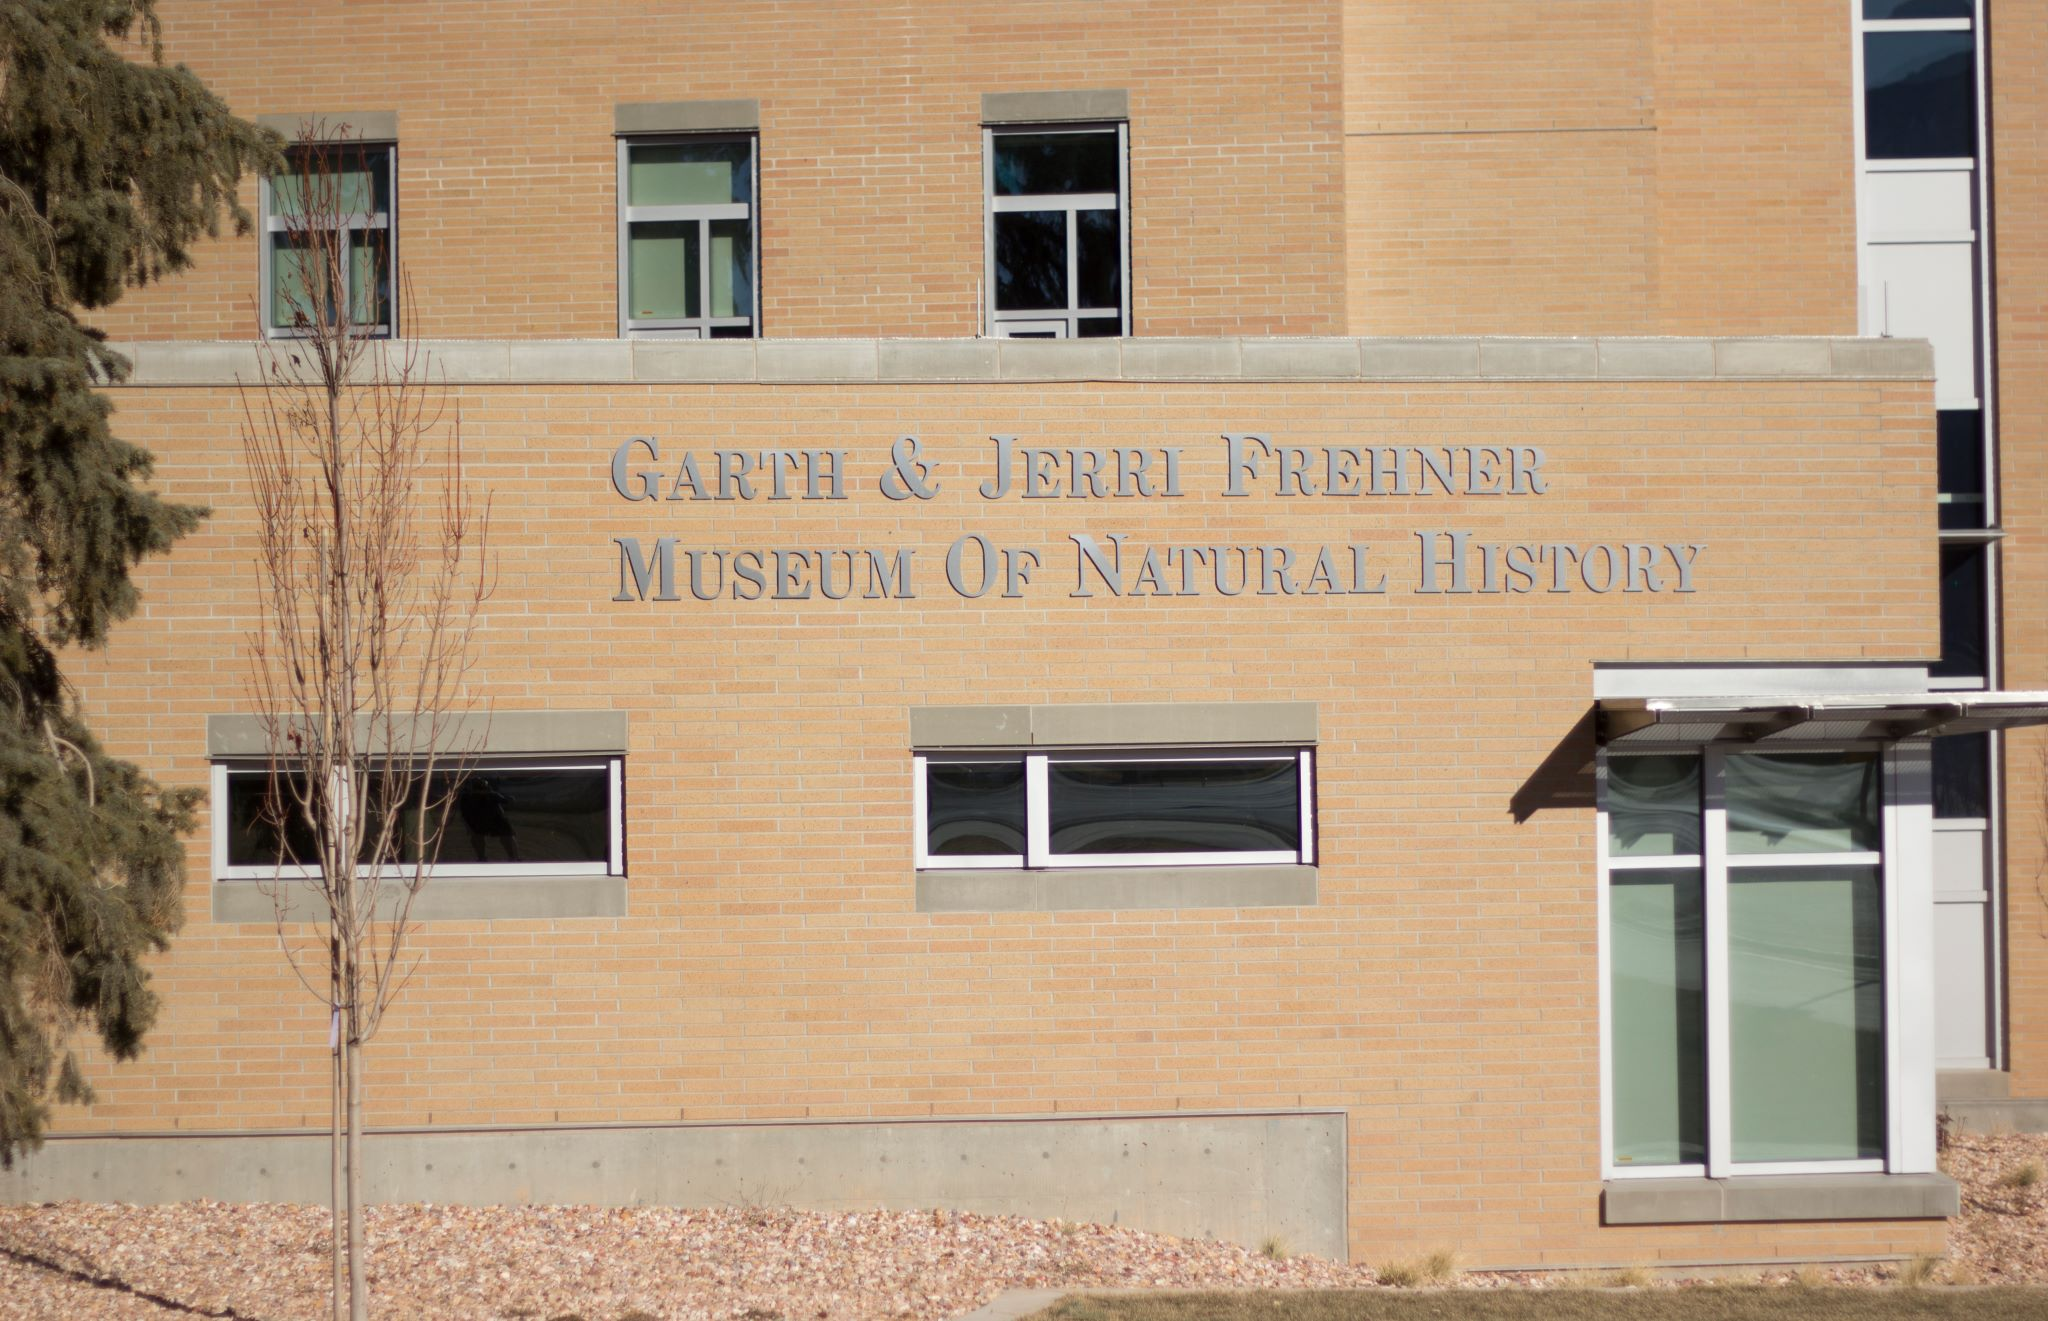 The museum is located on the first floor of the Science Addition Building which is in the southeastern corner of the campus.